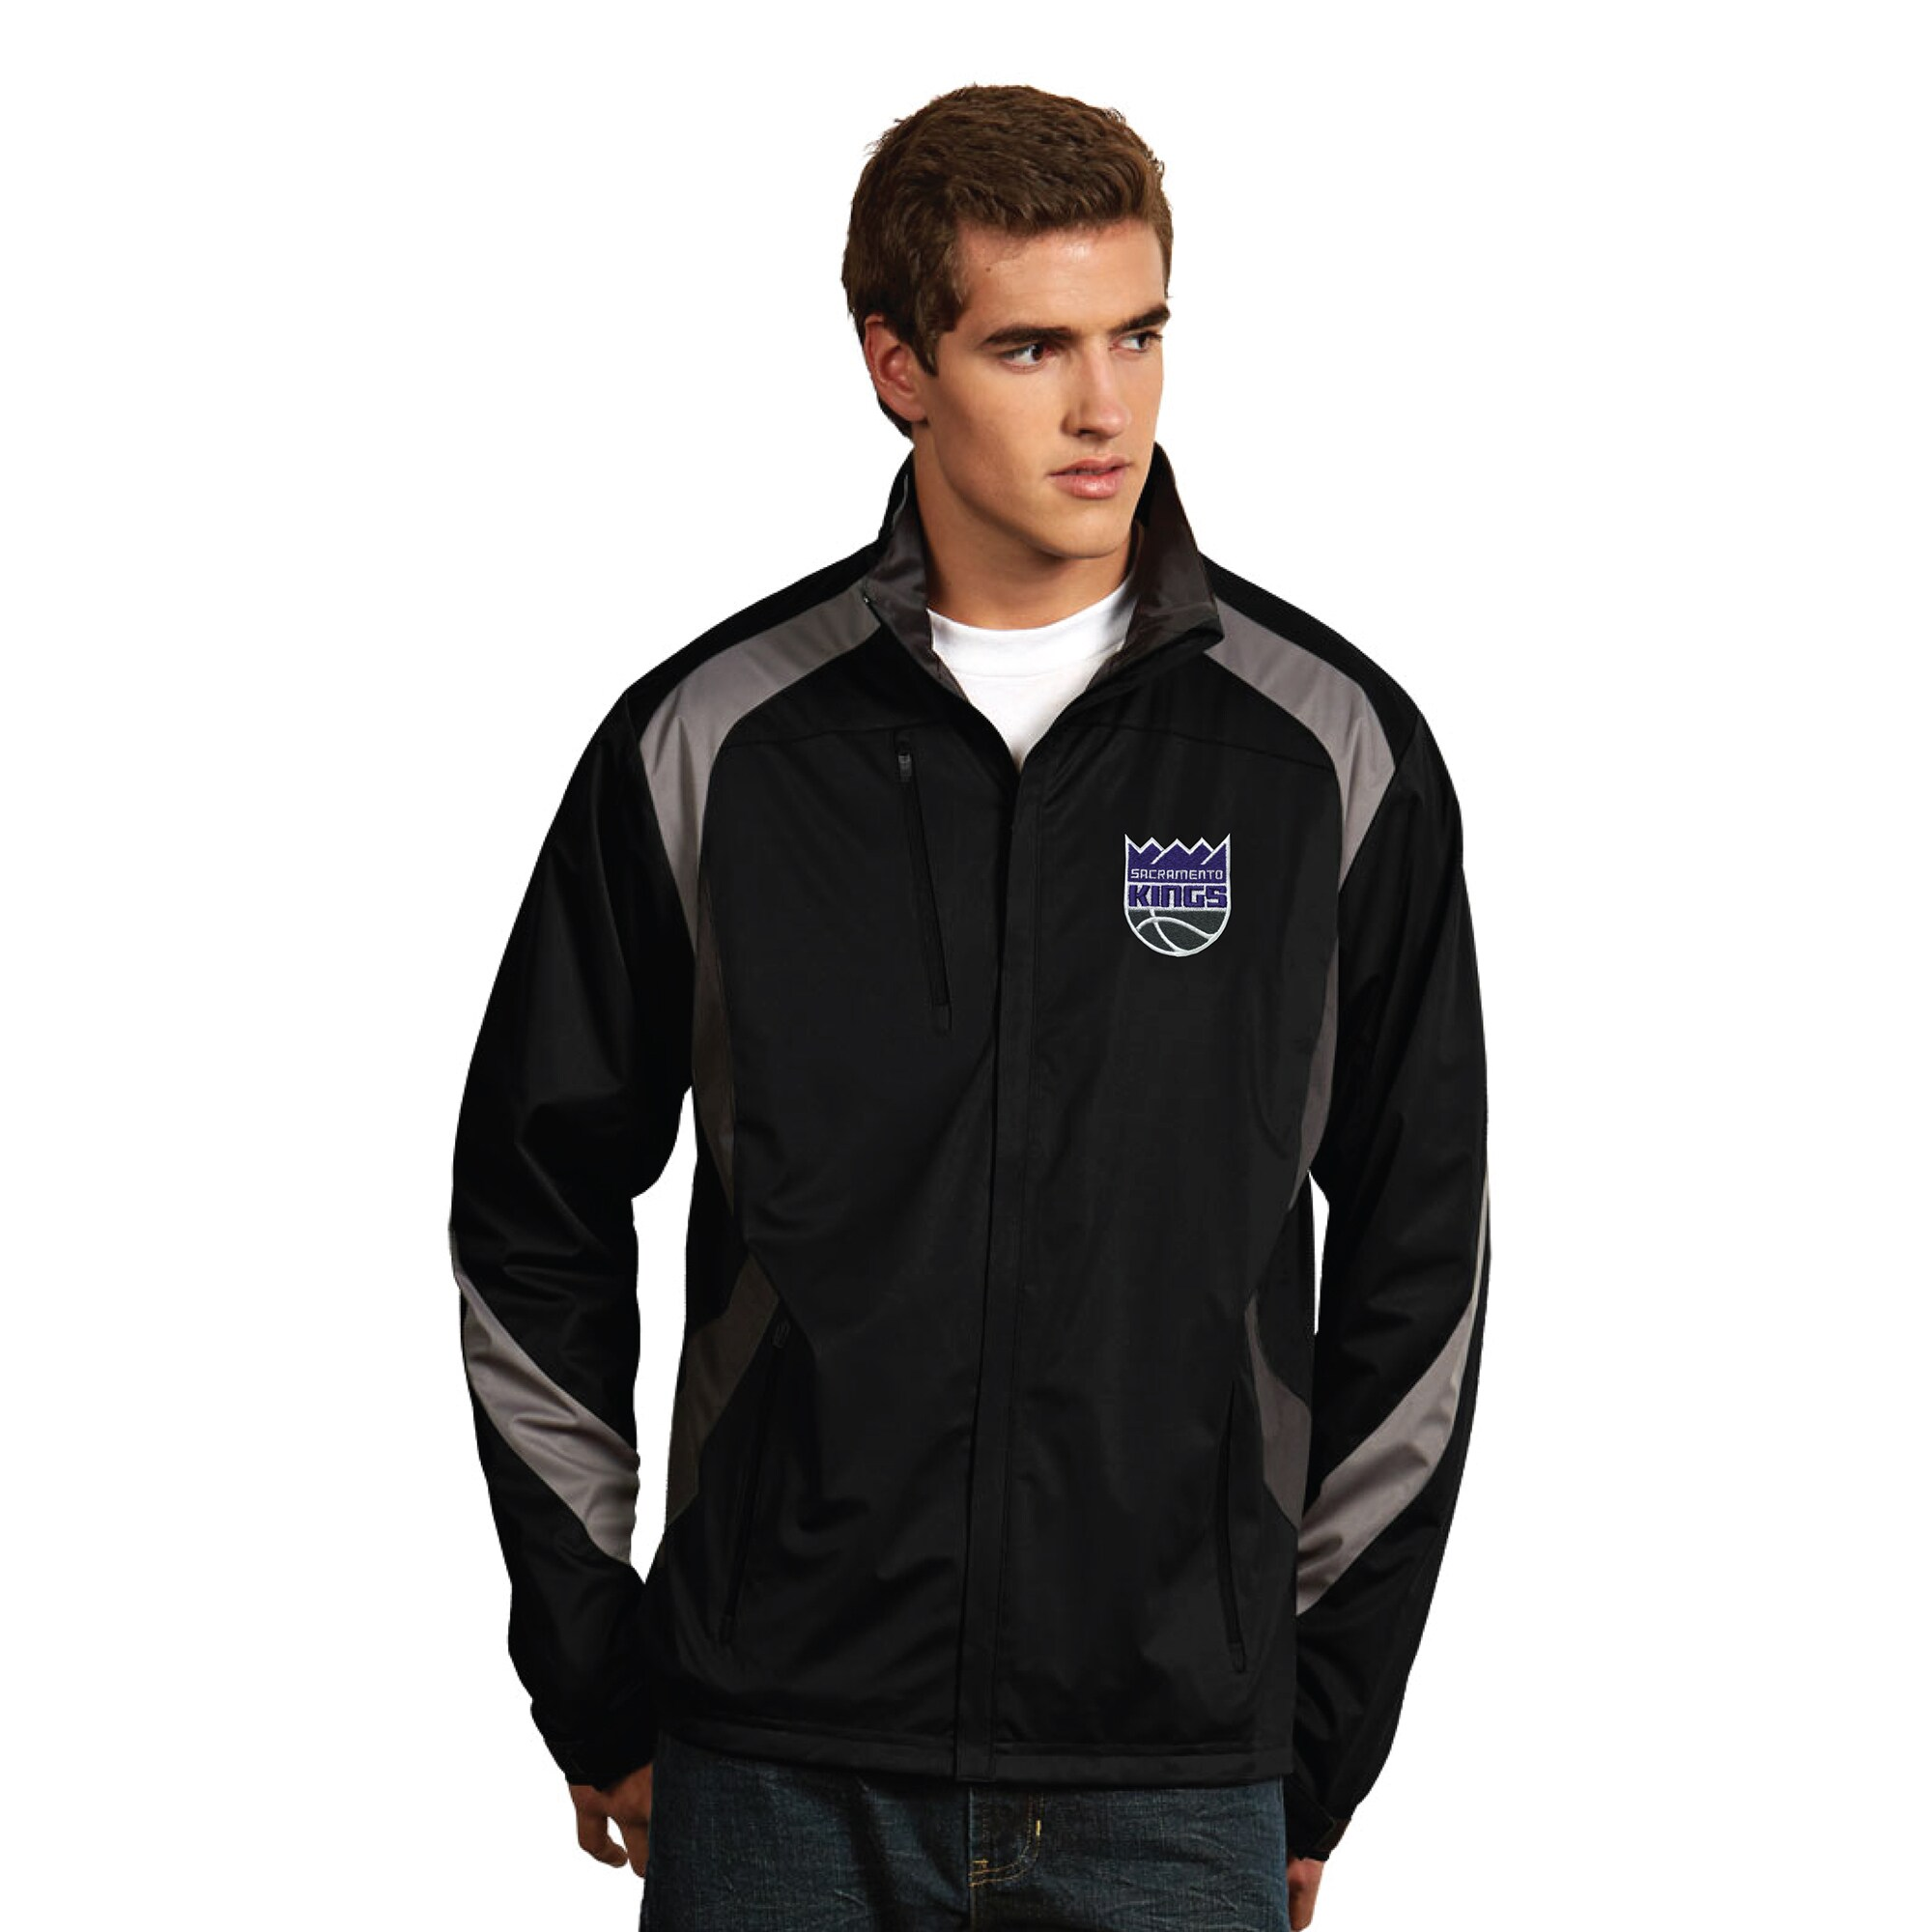 Sacramento Kings Antigua New Logo Tempest Desert Dry Xtra-Lite Full-Zip Jacket - Black